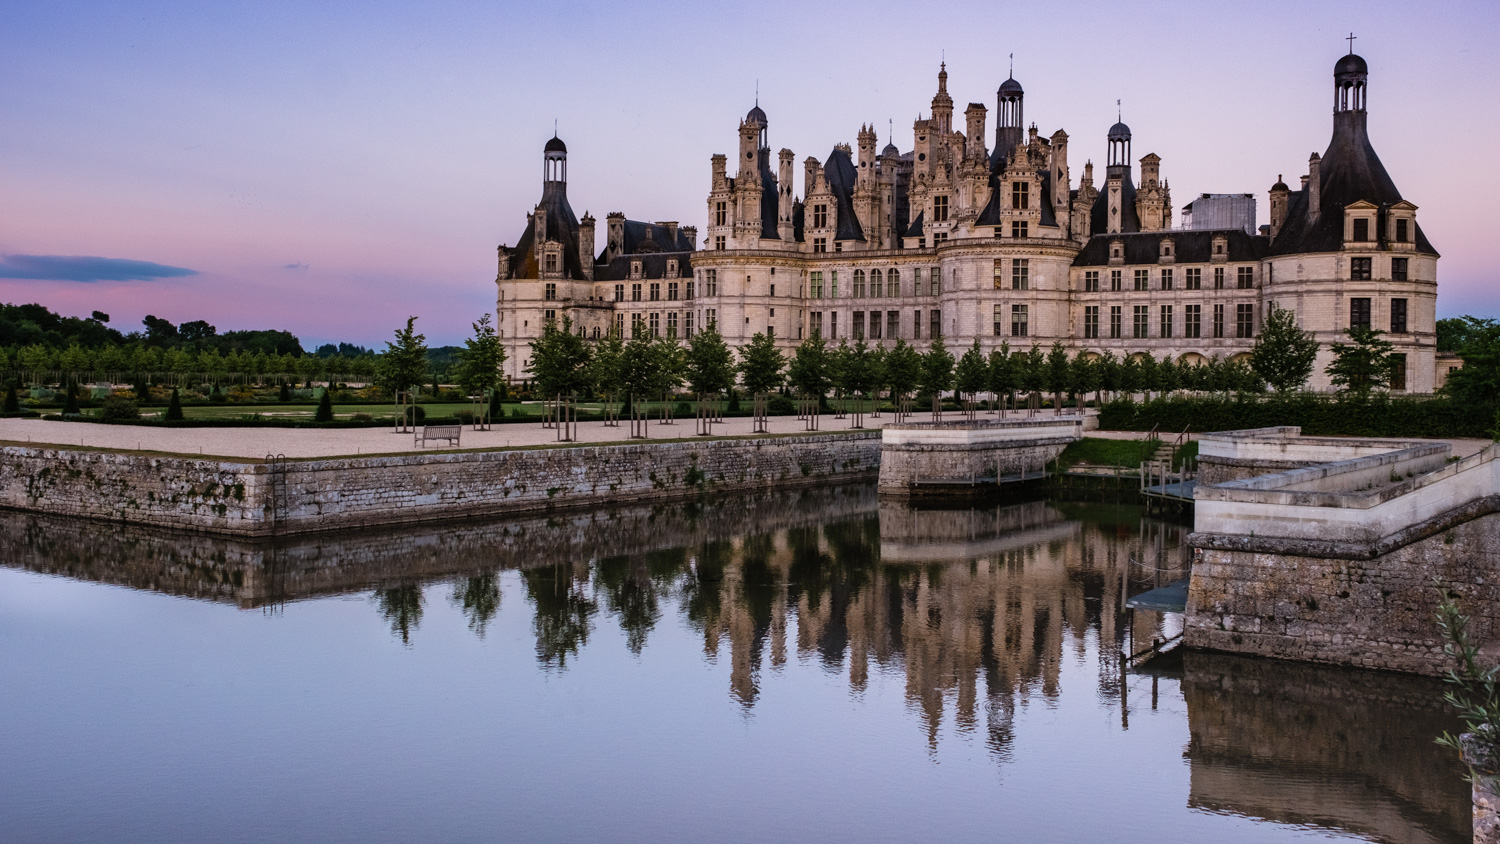 Chambord at sunset